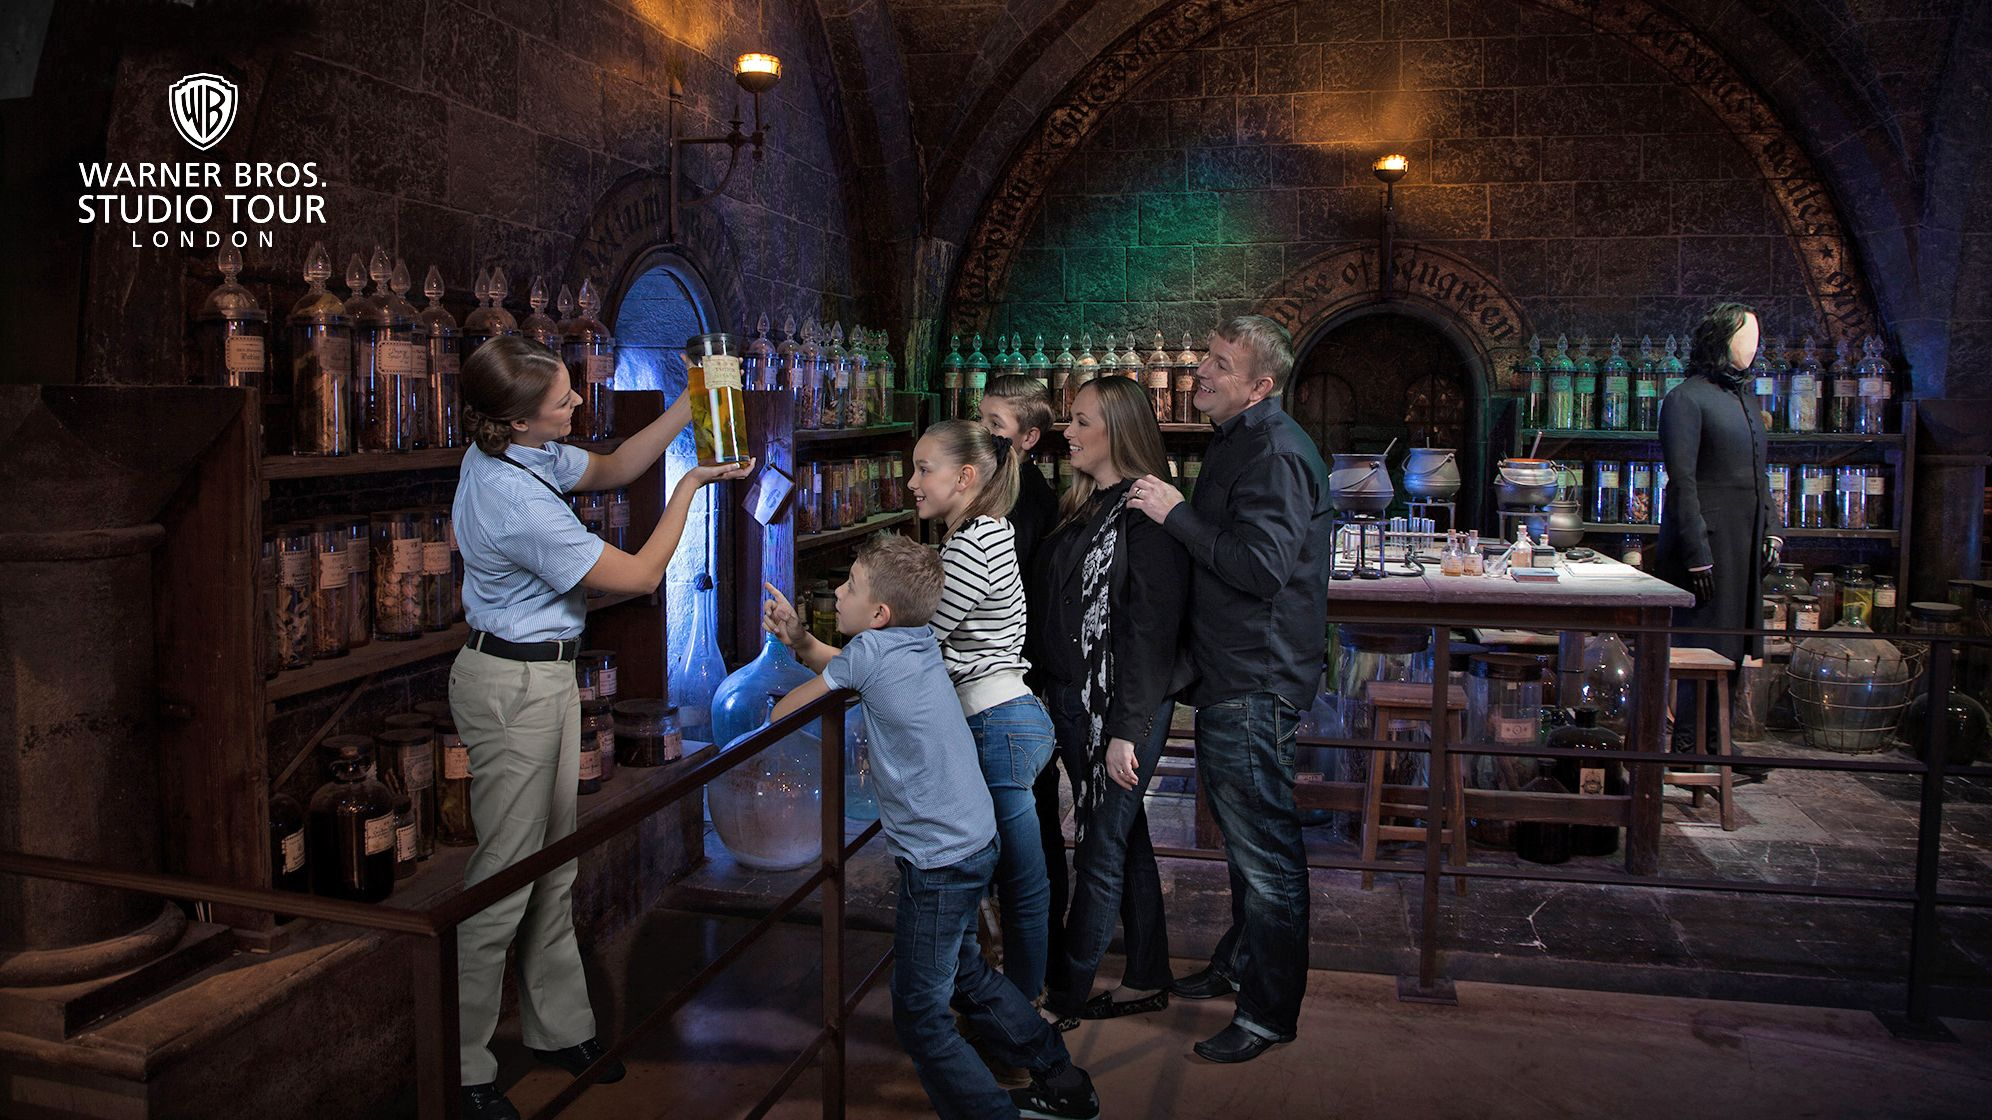 A tour guide takes a group through Snape's potion class in the Wizarding World of Harry Potter